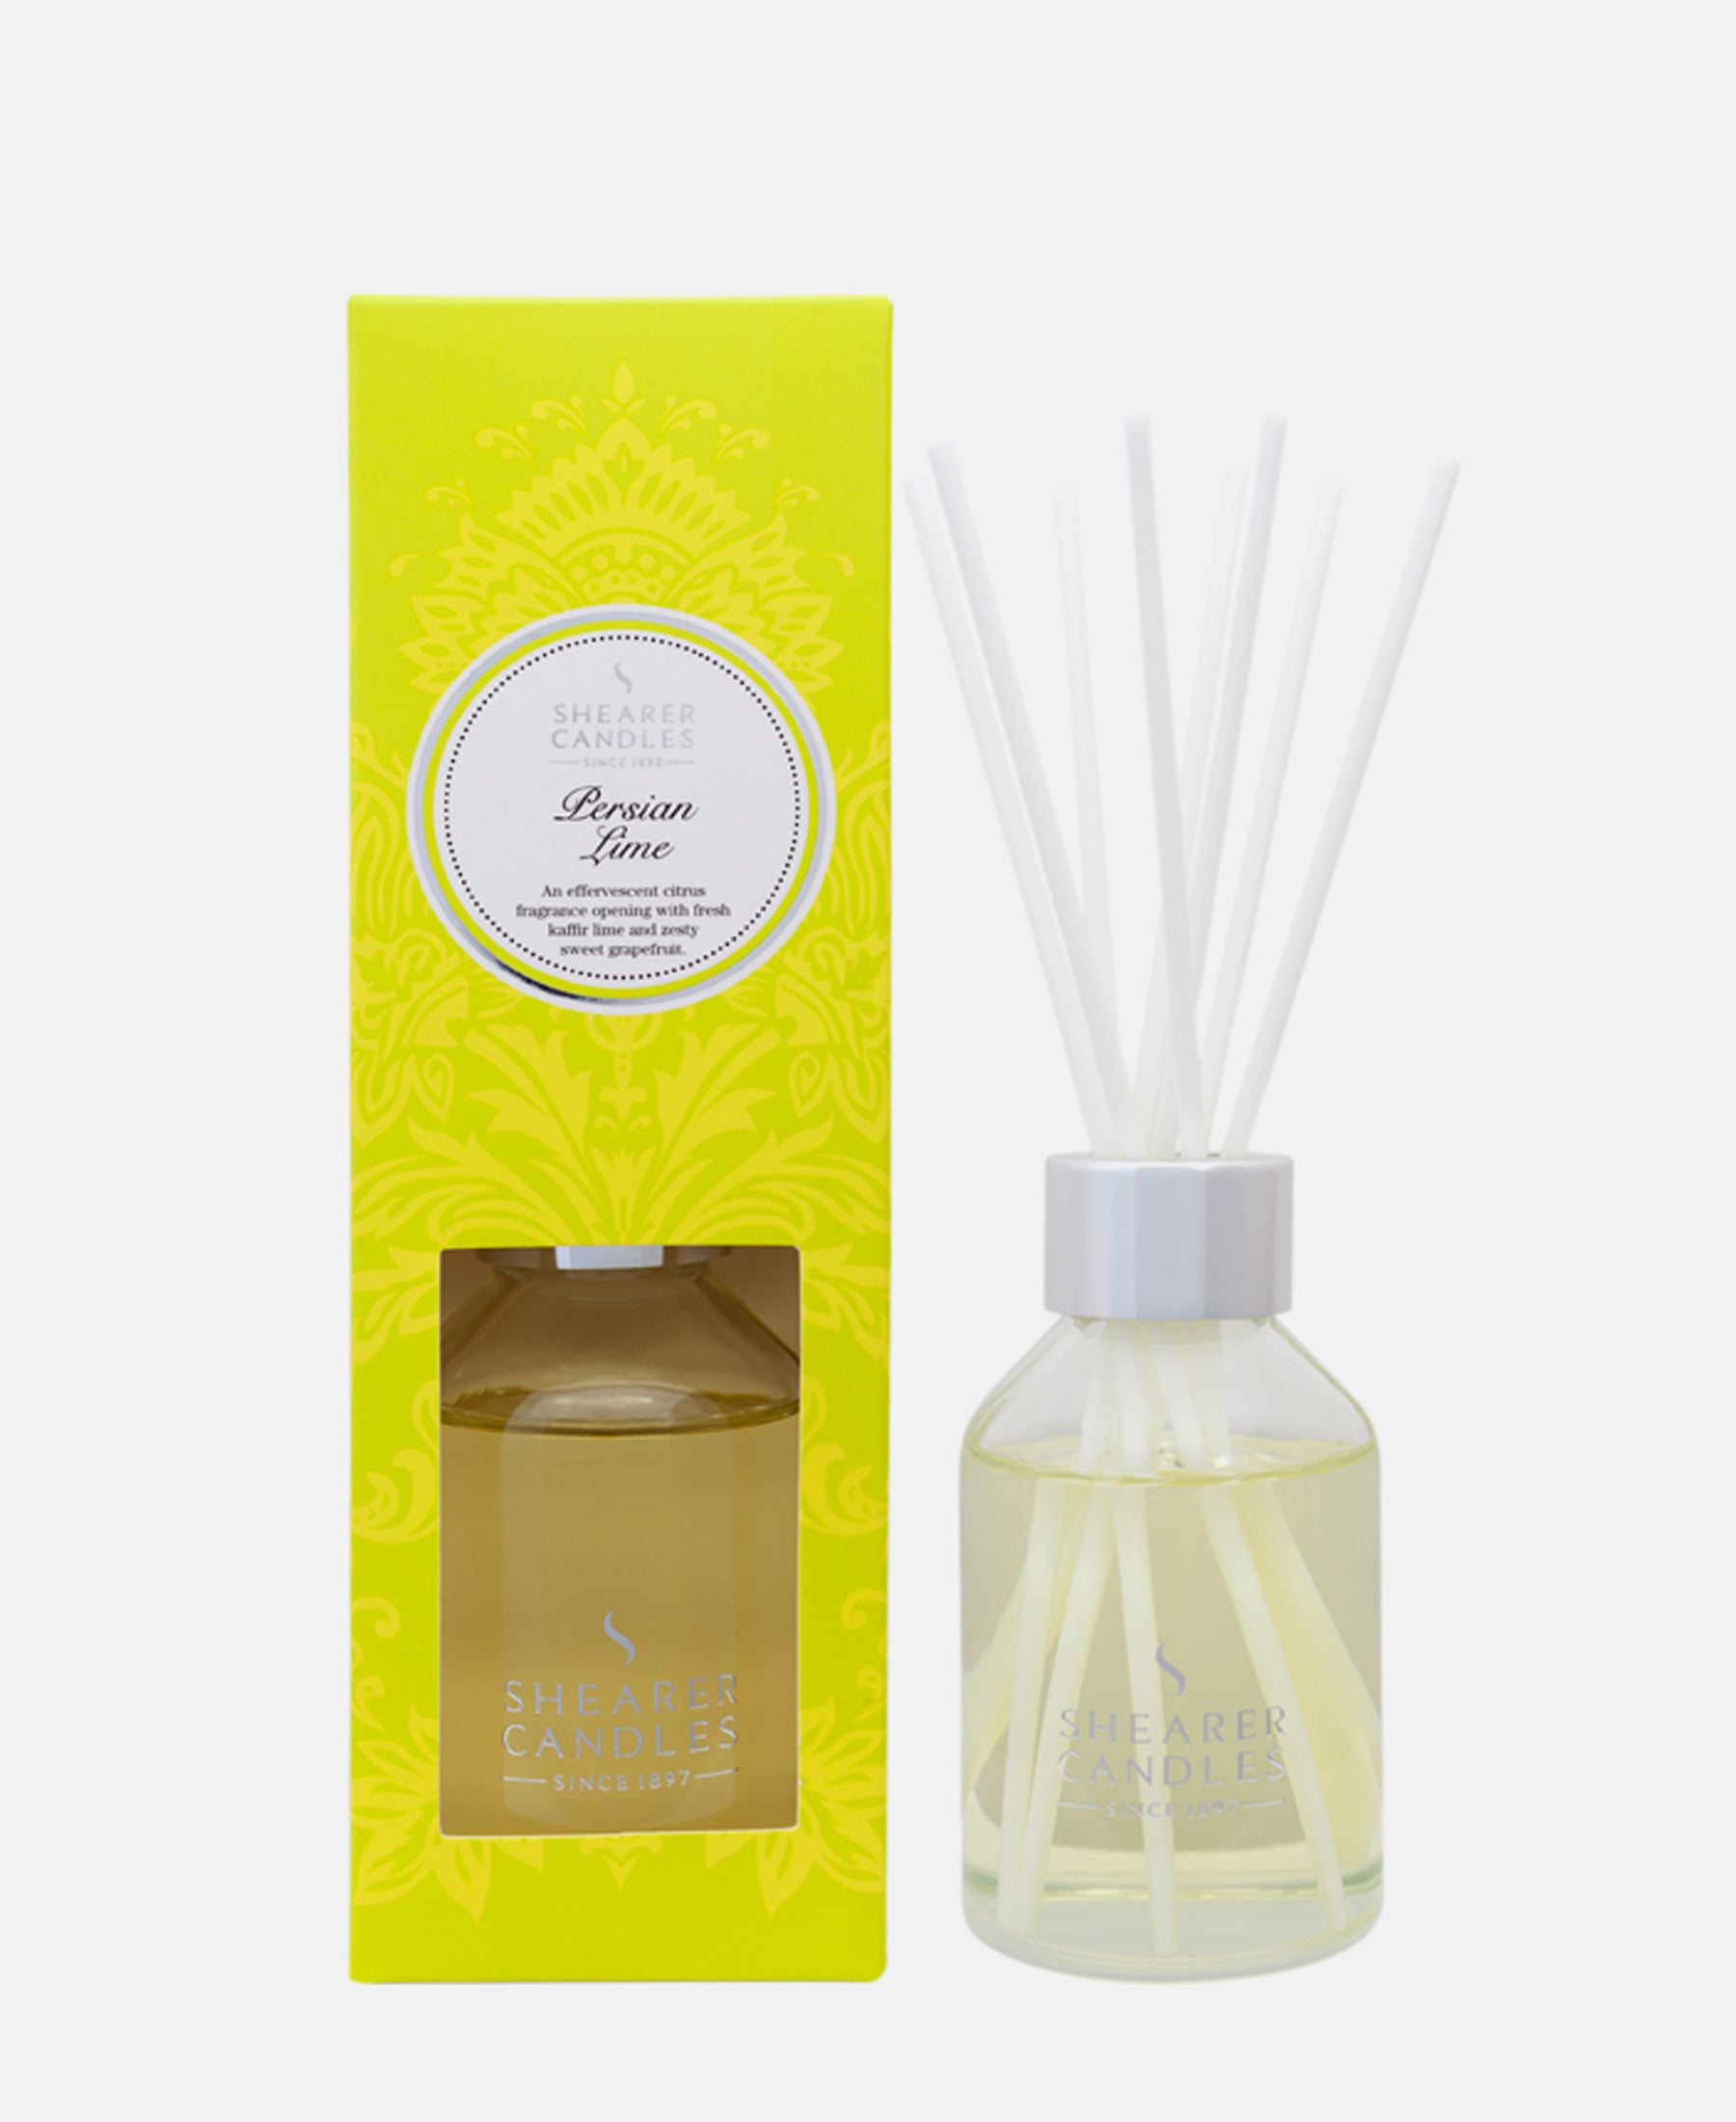 Shearer Candles Persian Lime Diffuser